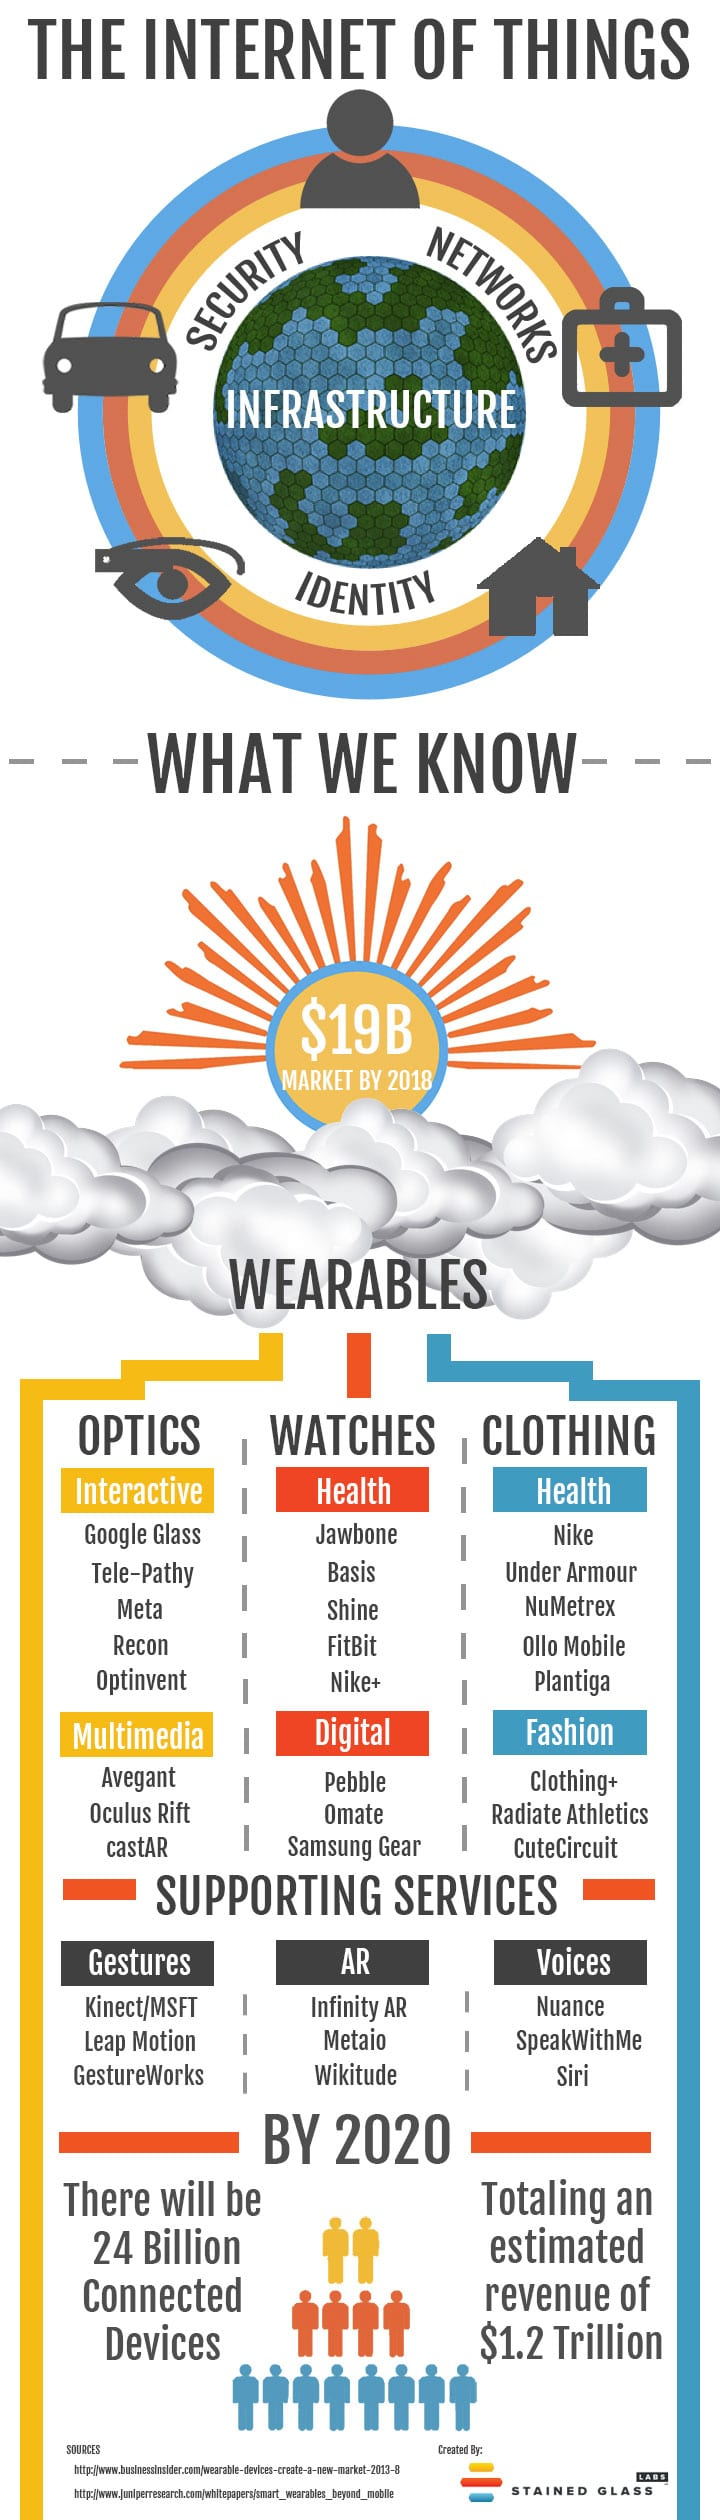 Wearbles-Infographic-Stained-Glass-Labs-2013